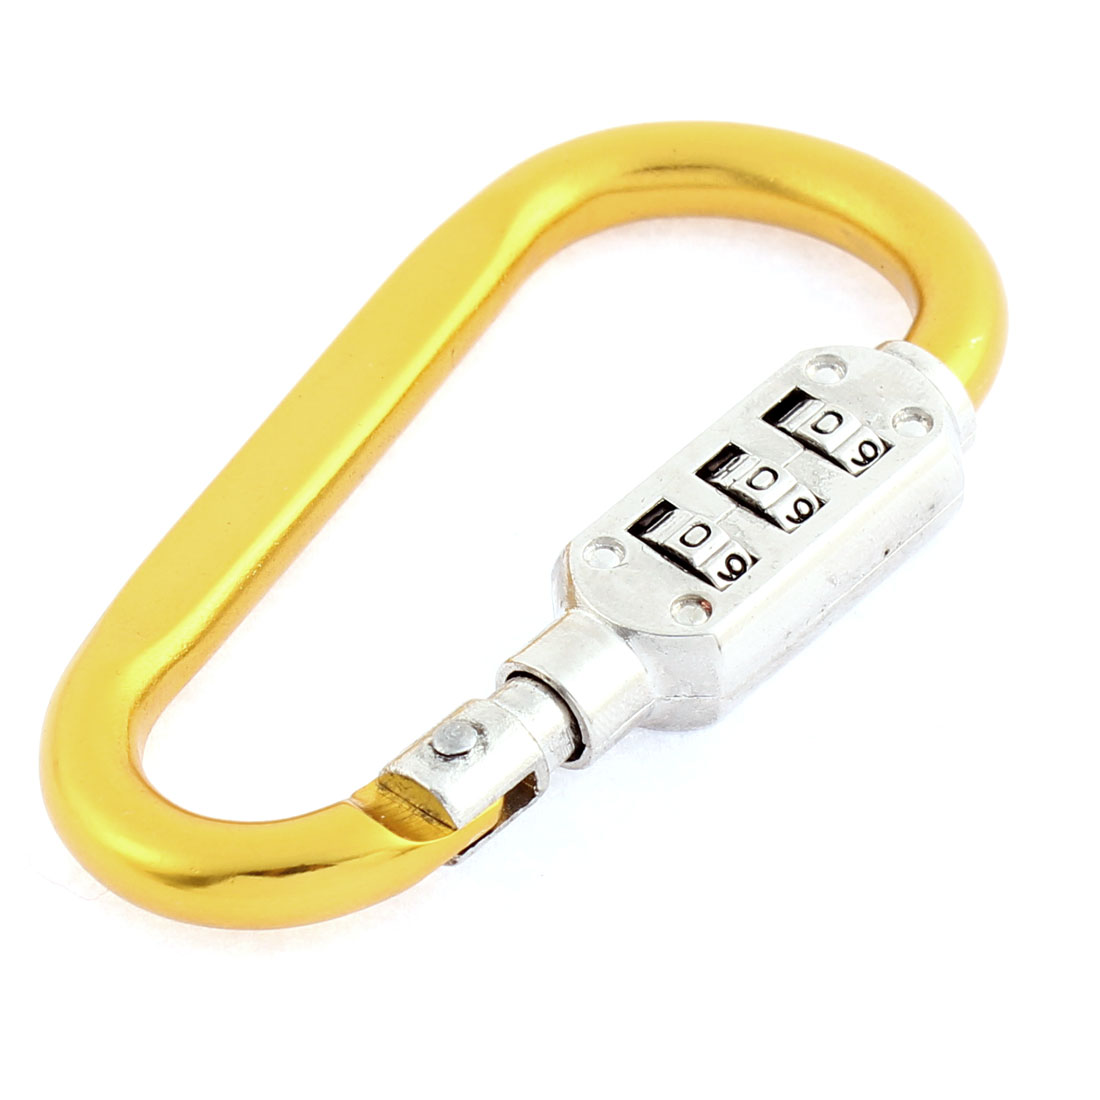 Resettable Combination Number 3 Digit Padlock Carabiners Hook